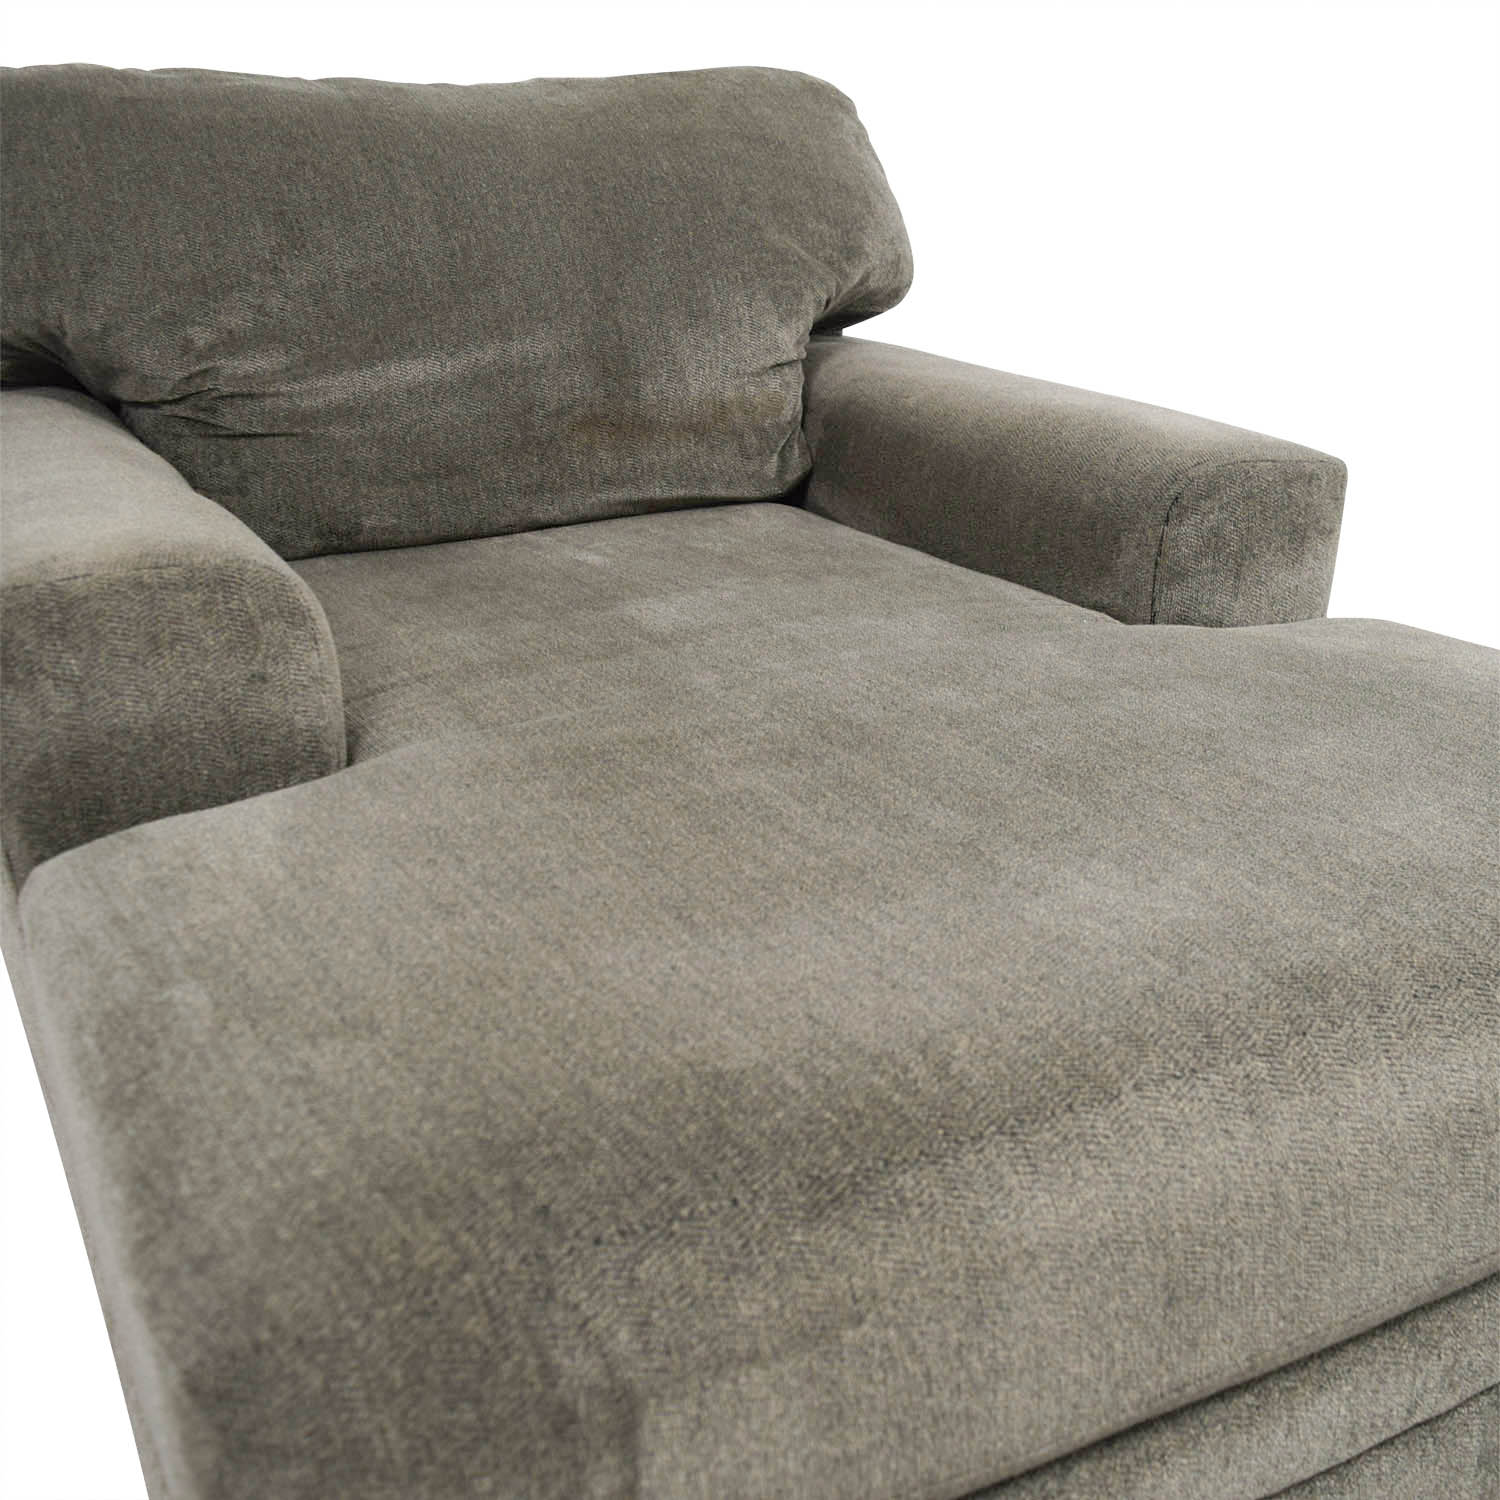 Bobs Furniture Grey Chaise Lounge sale